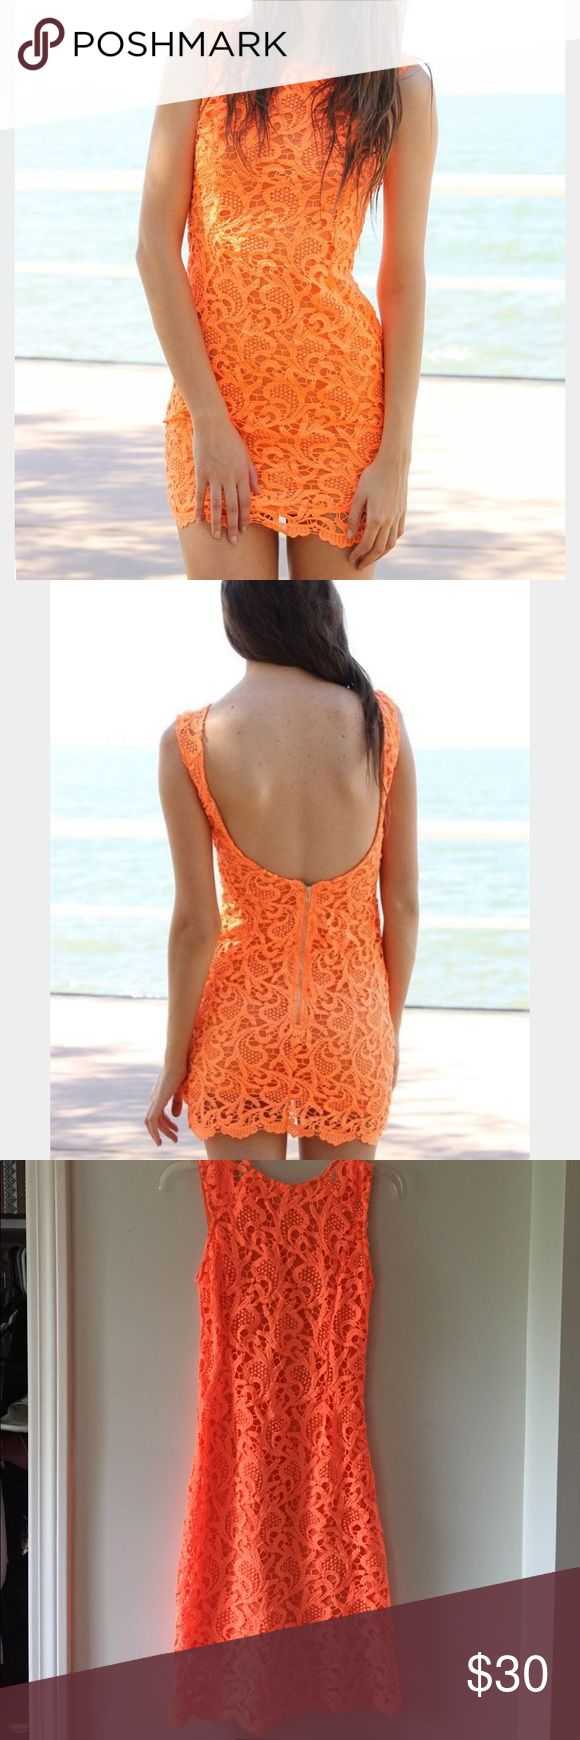 Sabo Skirt Orange Lace Dress Worn a few times in perfect condition. Open back Sabo Skirt Dresses Mini